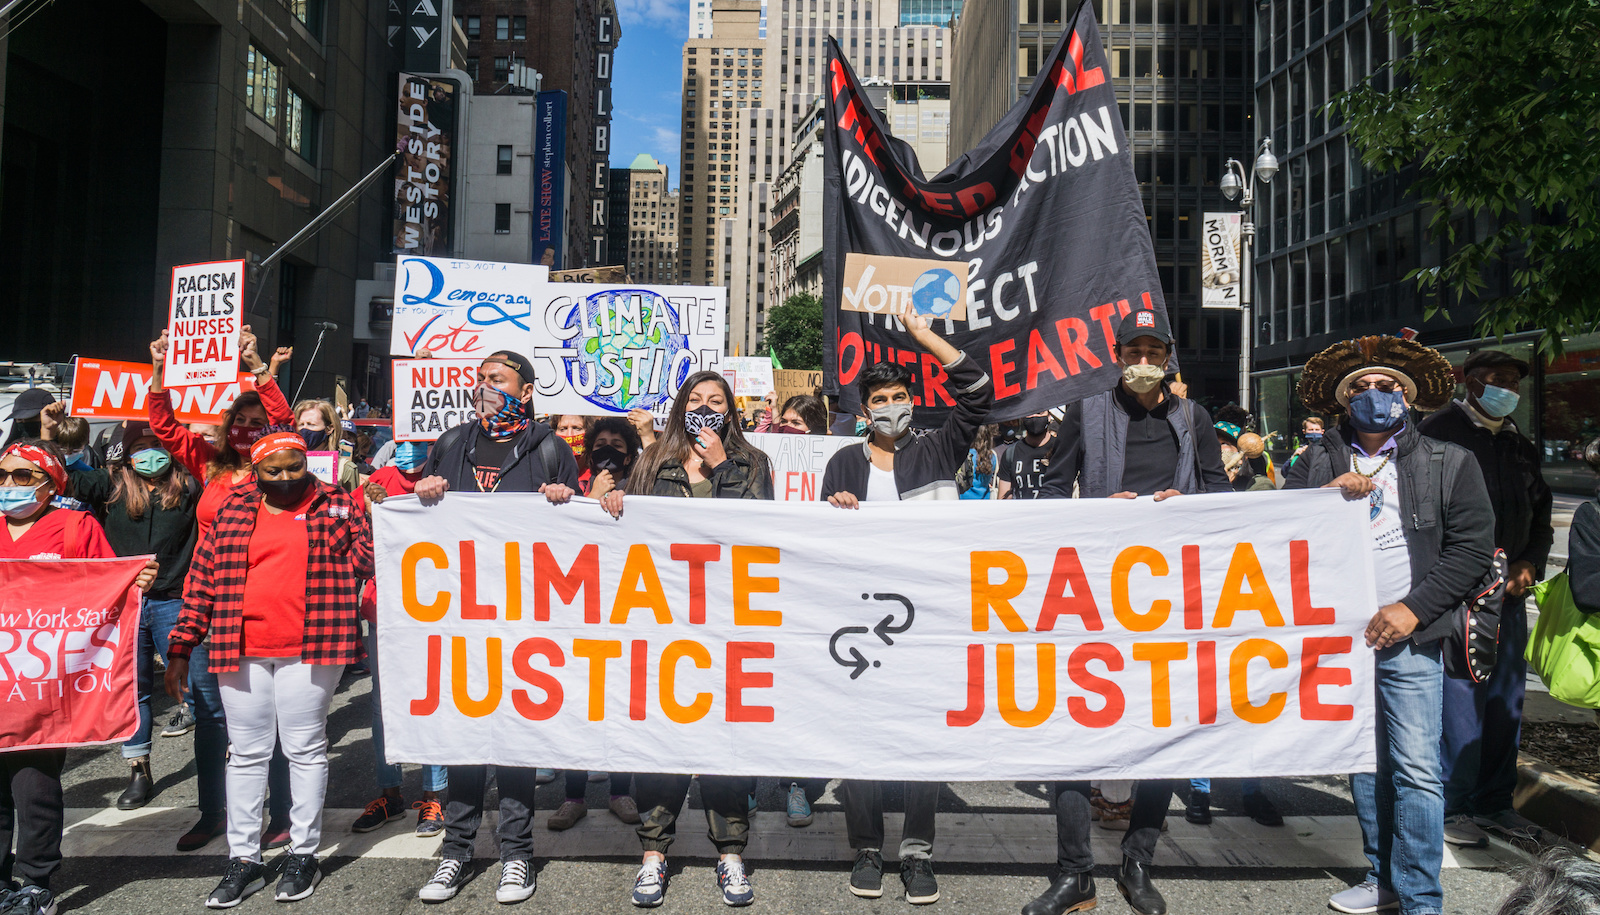 protestors hold a banner that says climate justice equals racial justice